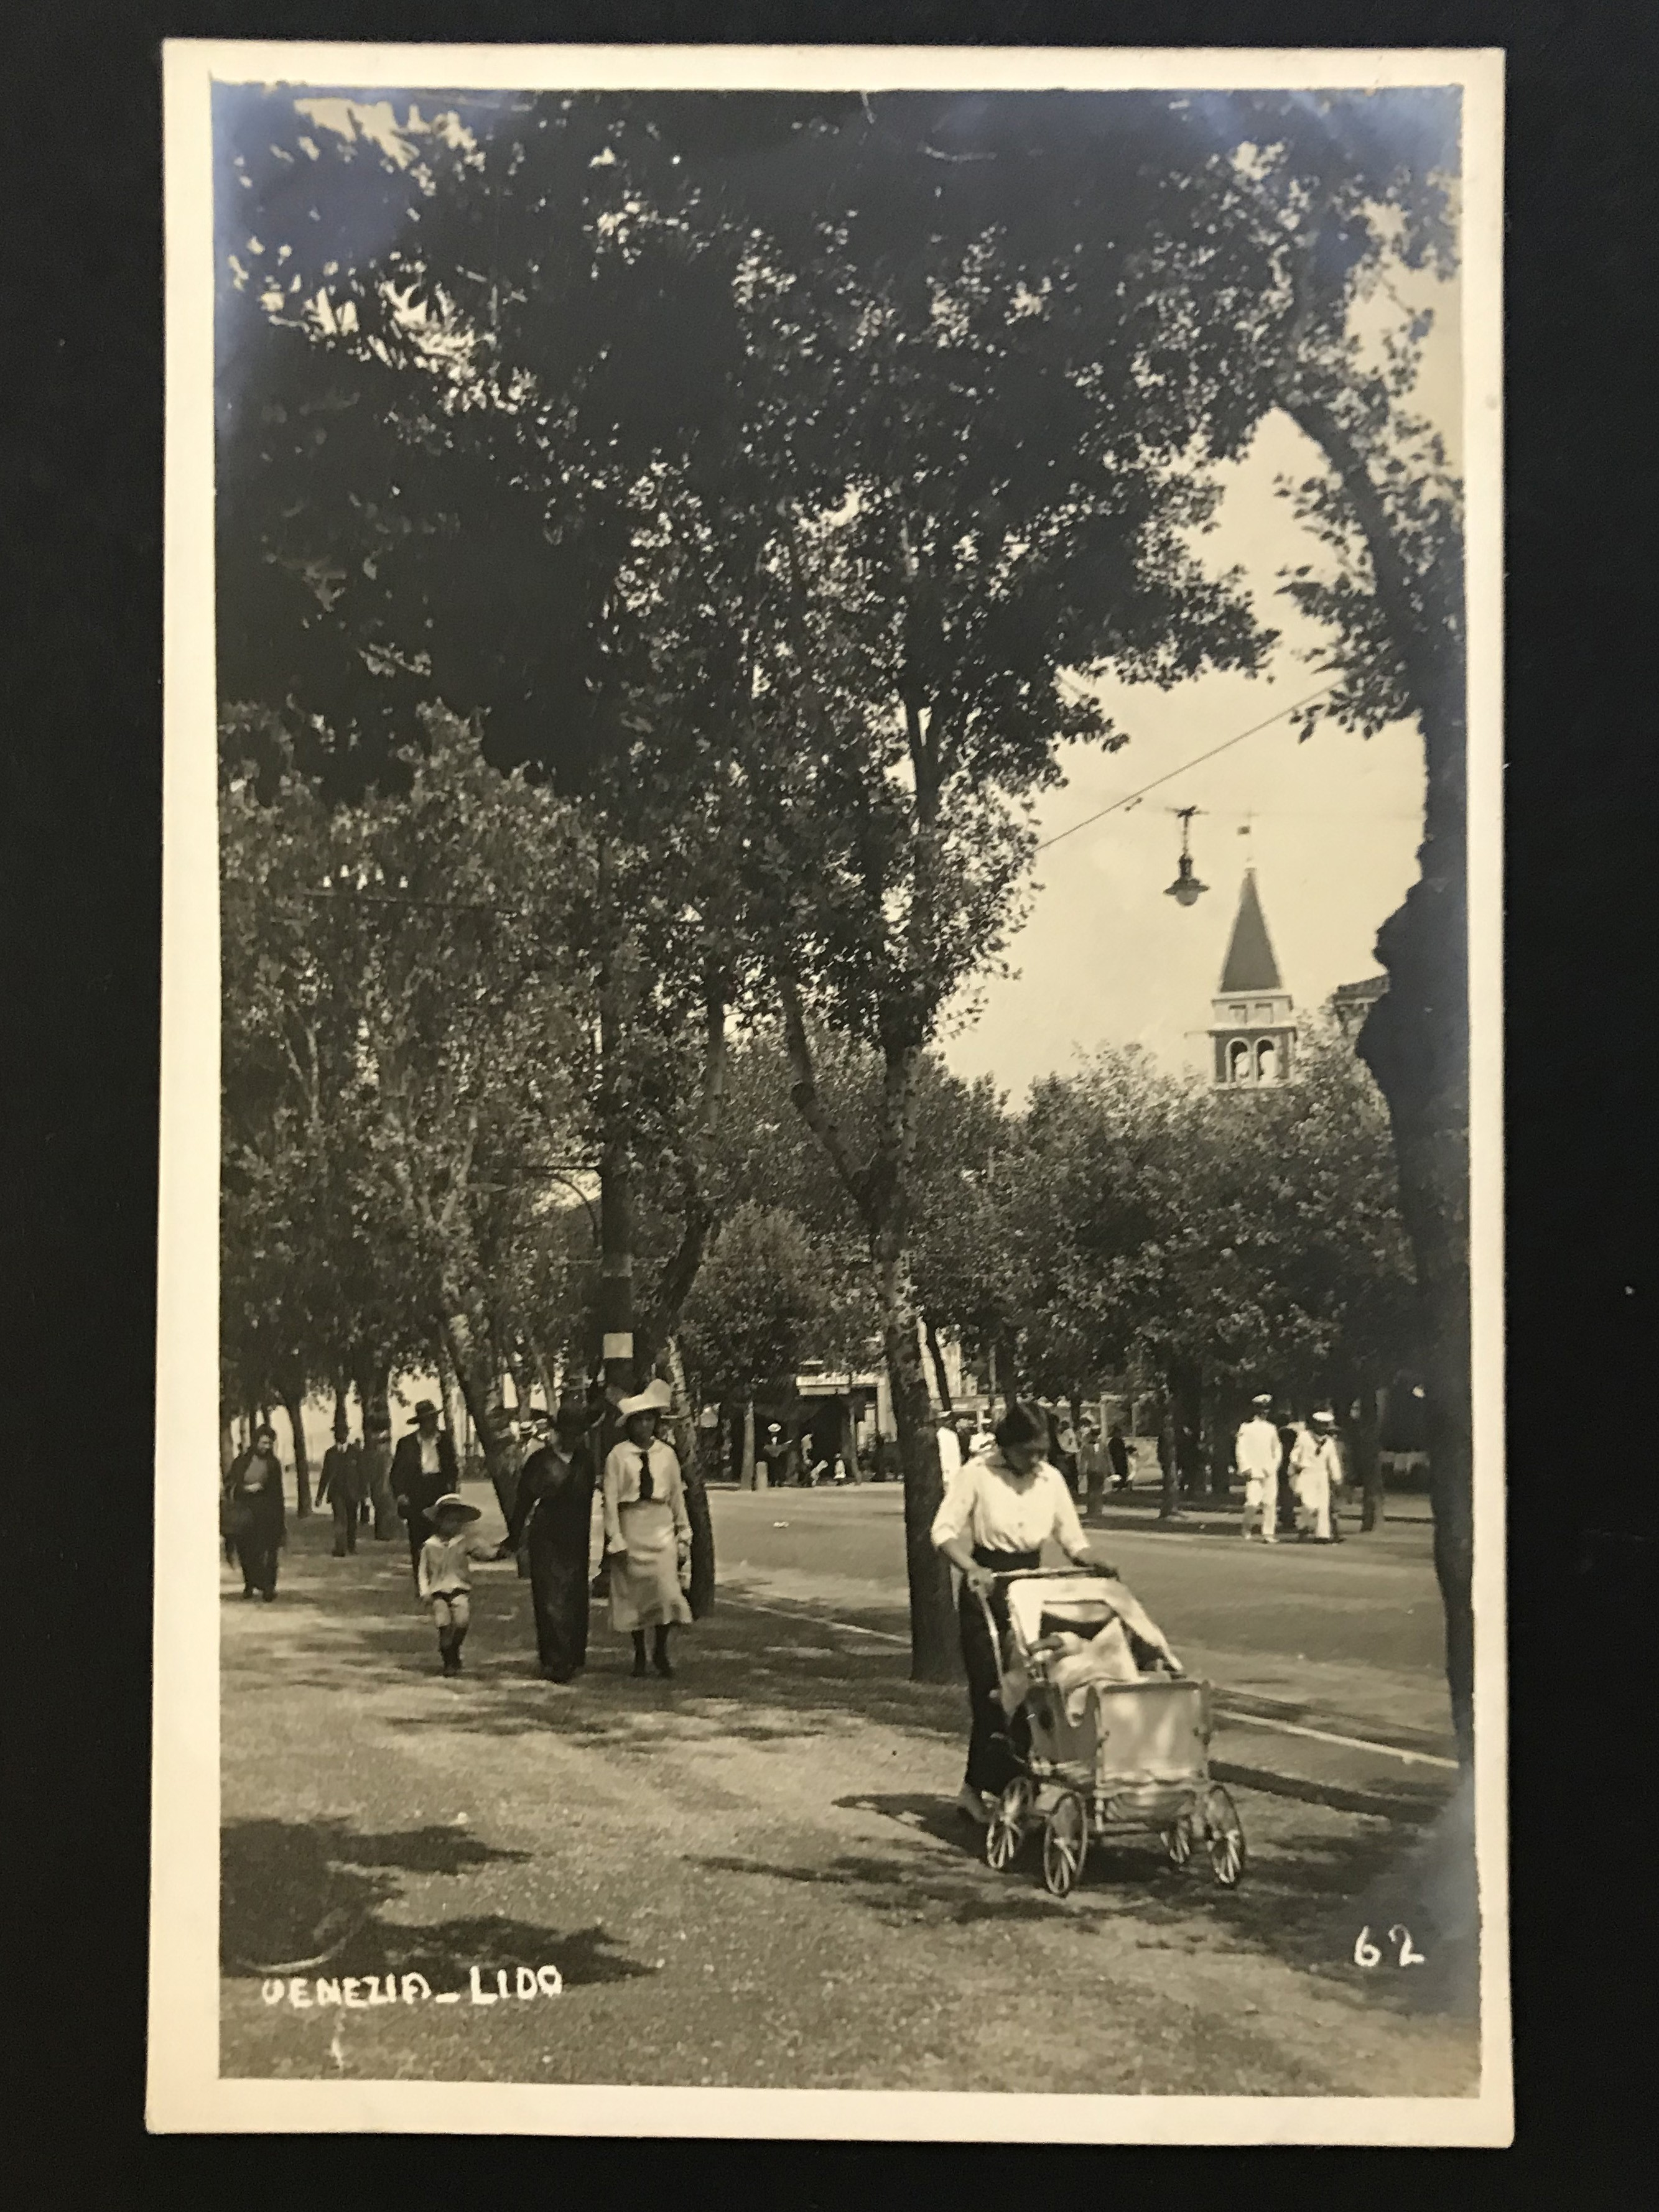 SELECTION OF VENICE RELATED POSTCARDS - Image 29 of 53